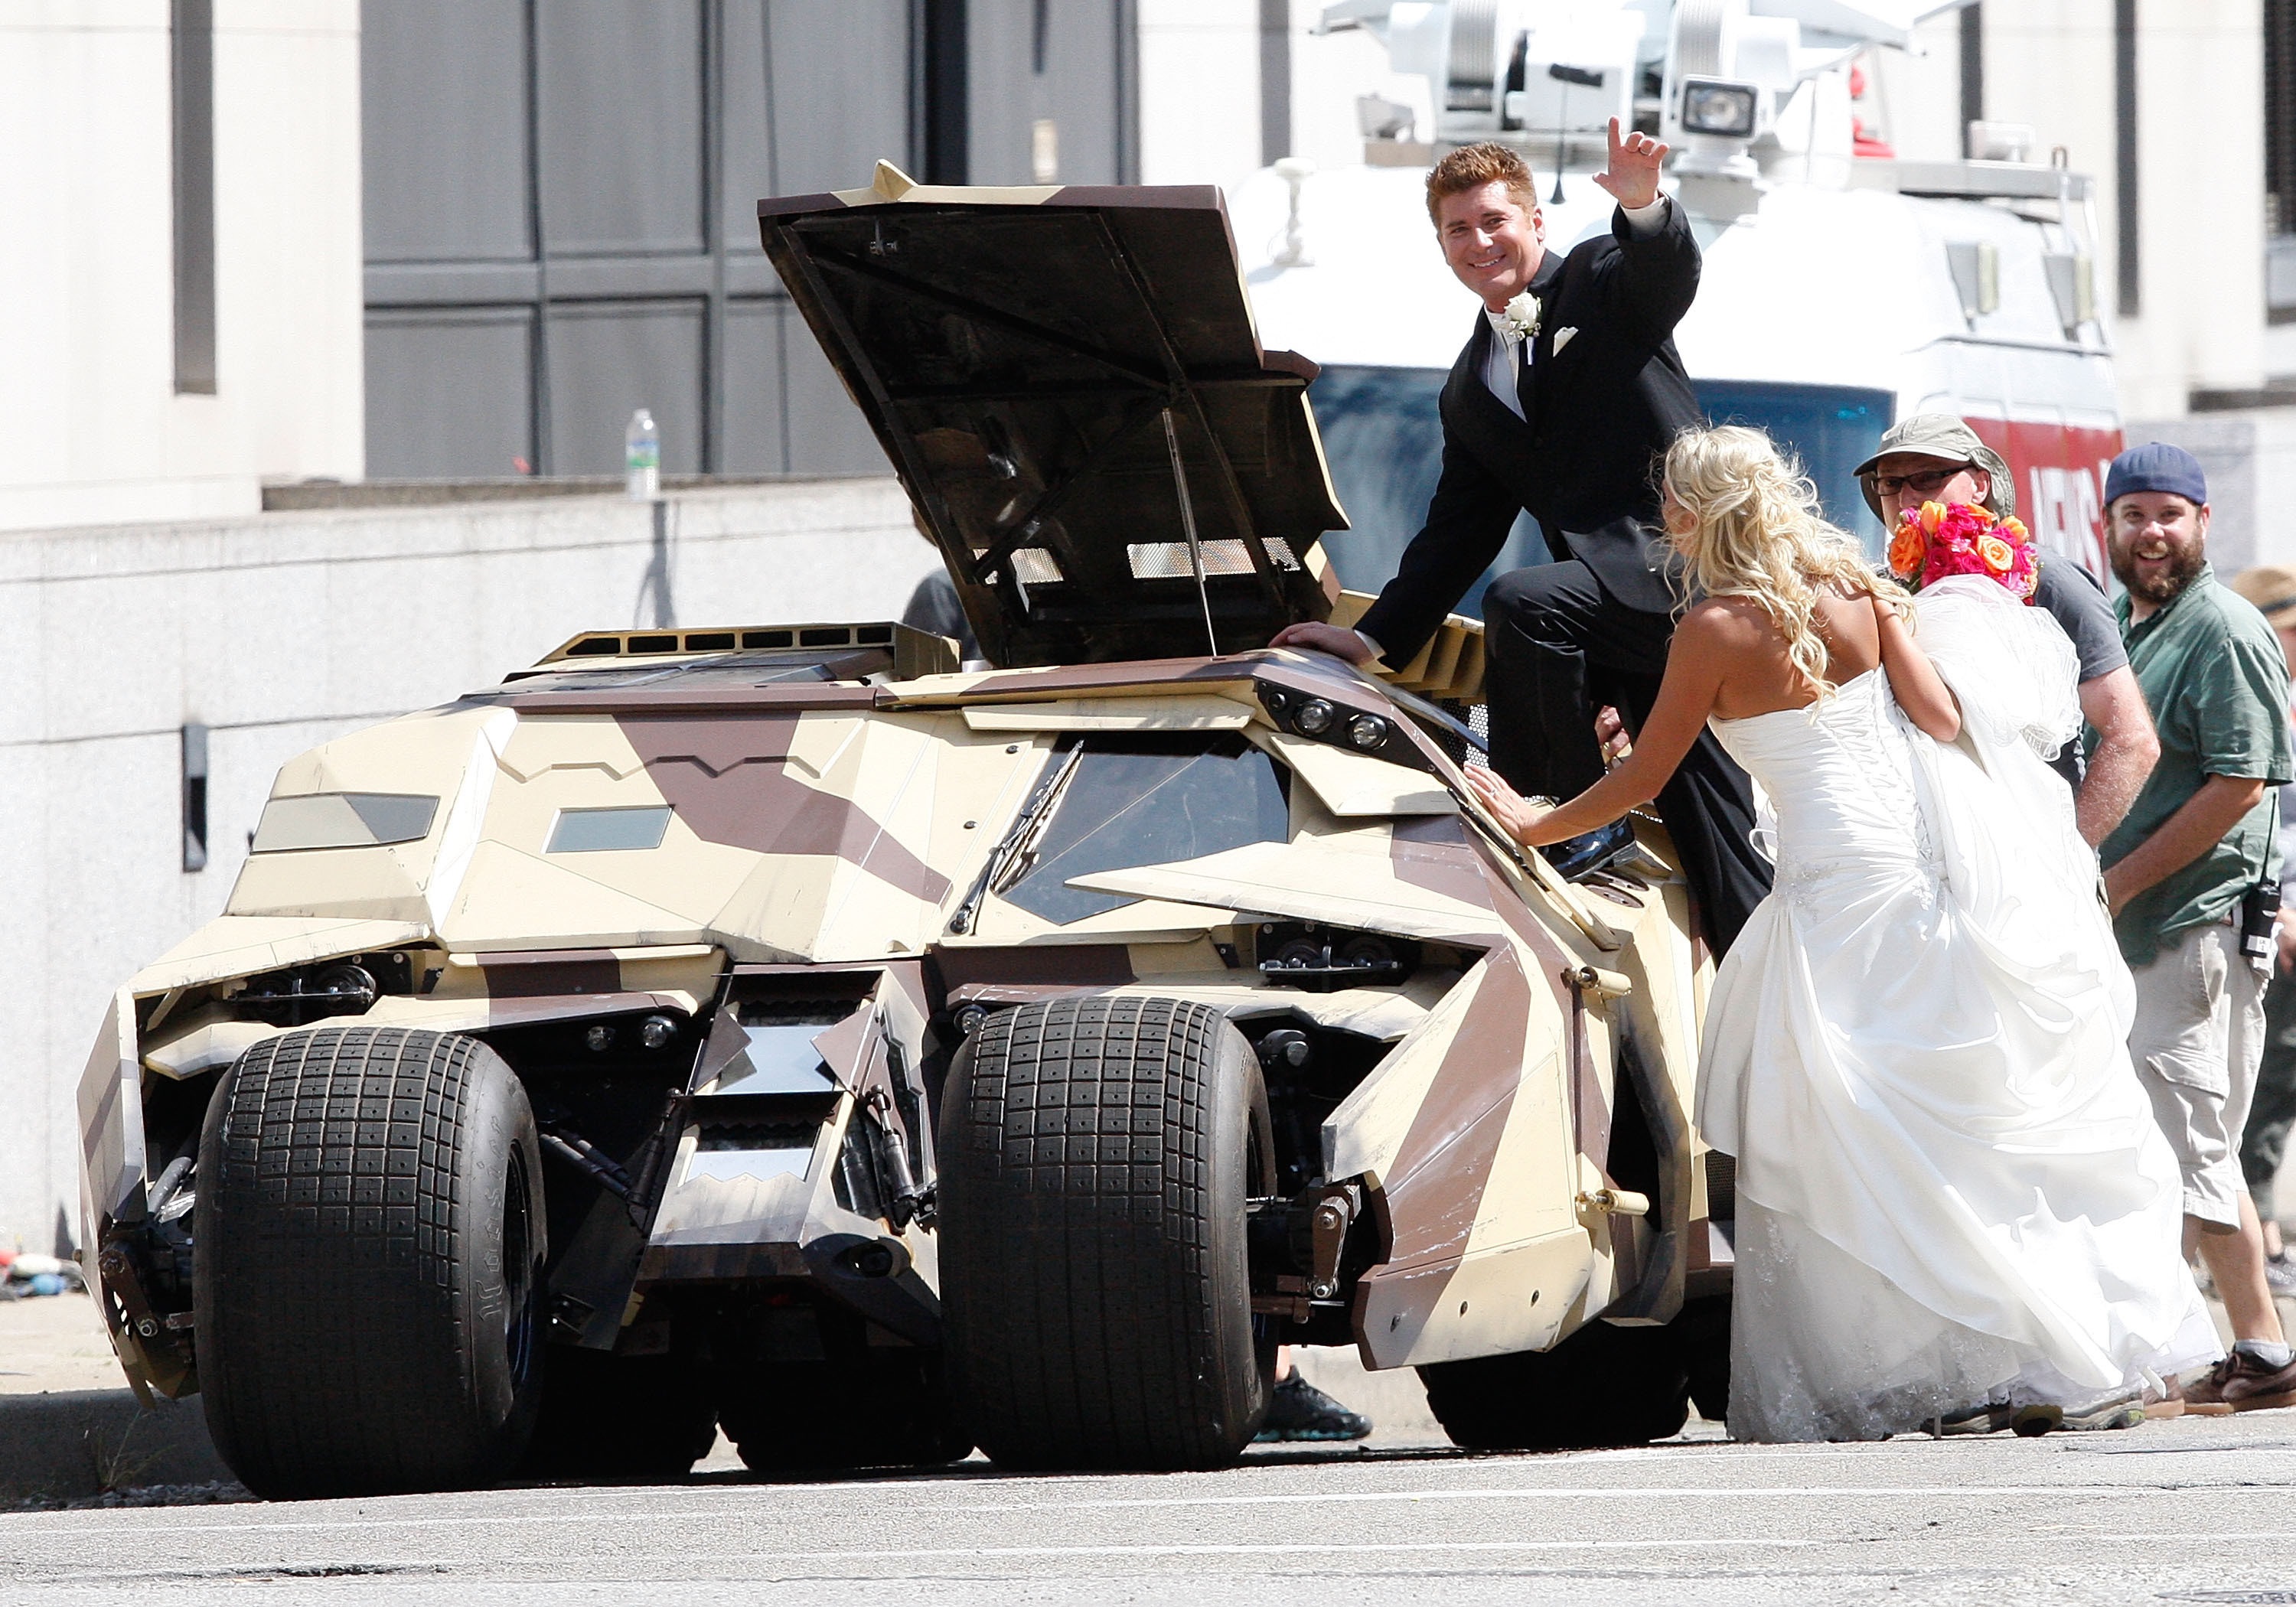 2014-08-21-WEDDINGBATMAN_original.jpg